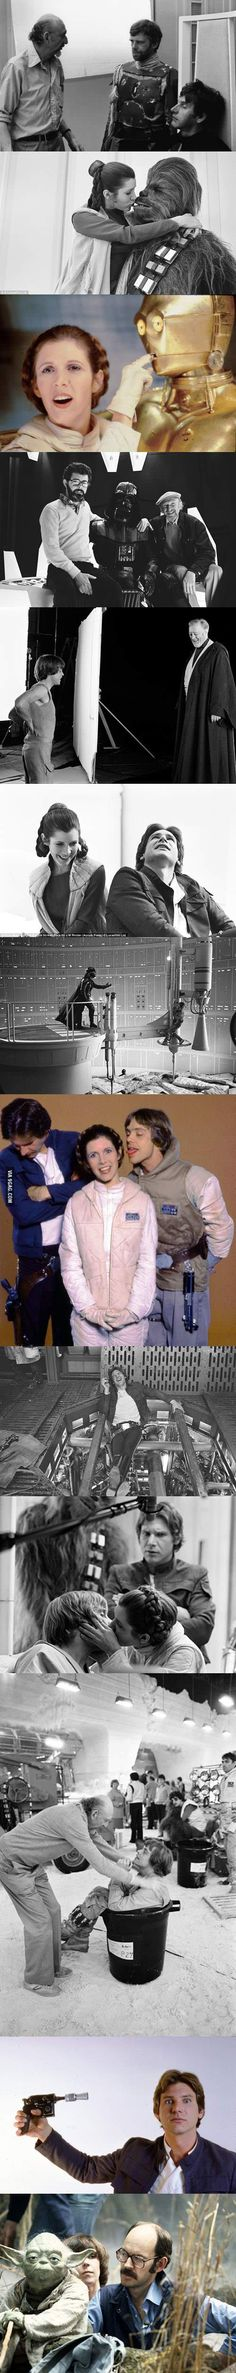 13 Epic Photos From Behind The Scene Of Star Wars Episode V